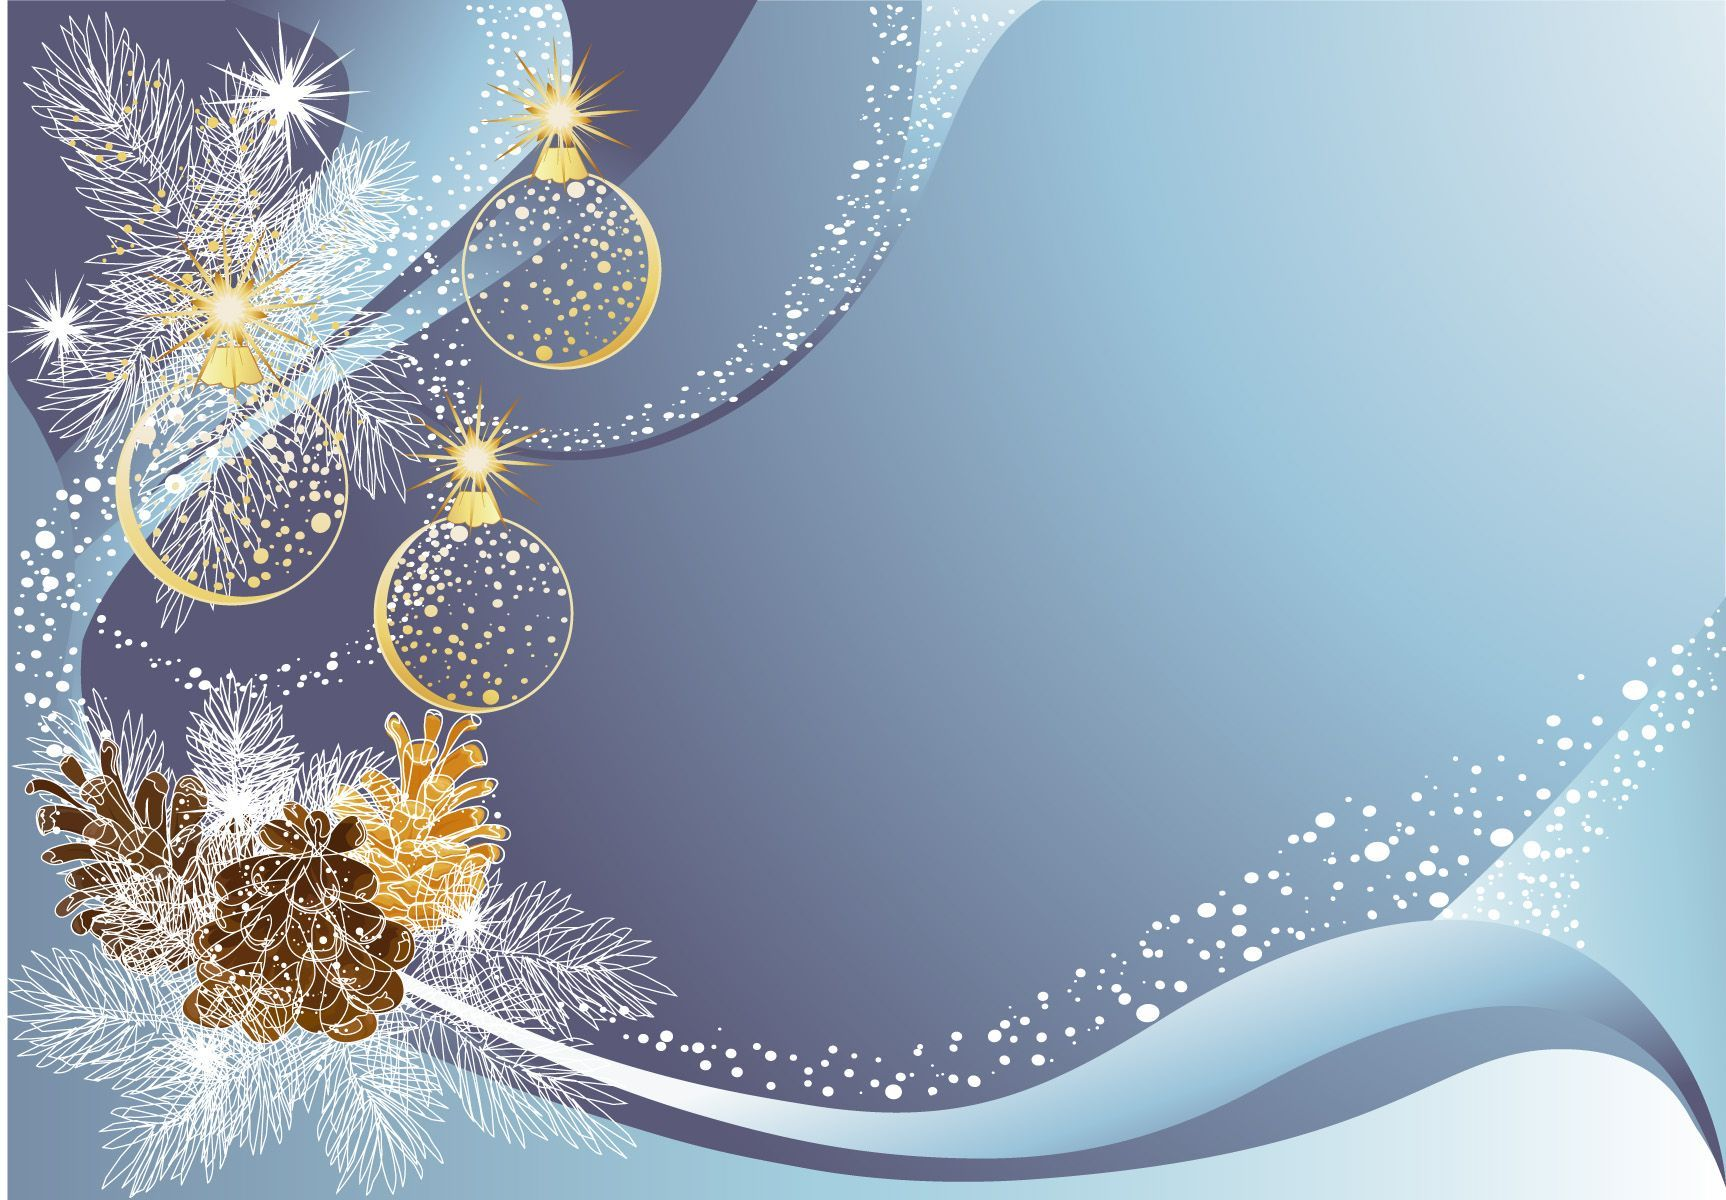 christmas images and backgrounds christmas,blue,holiday